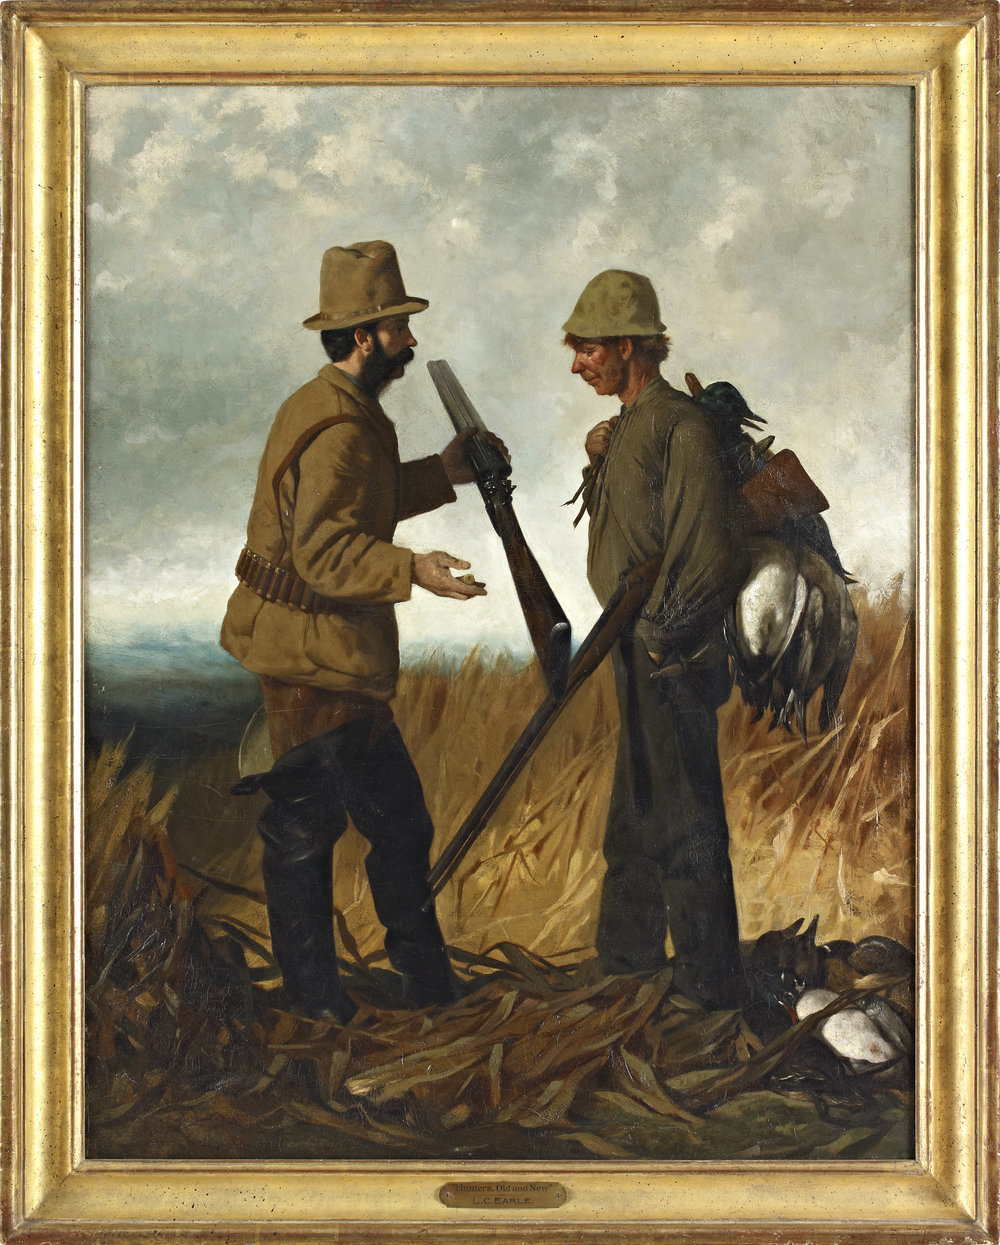 Lawrence Carmichael Earle (1845-1921),   Hunters, Old and New  , 1878, Oil on Canvas, Gift of Scott L. Probasco (Acc#1995.15).